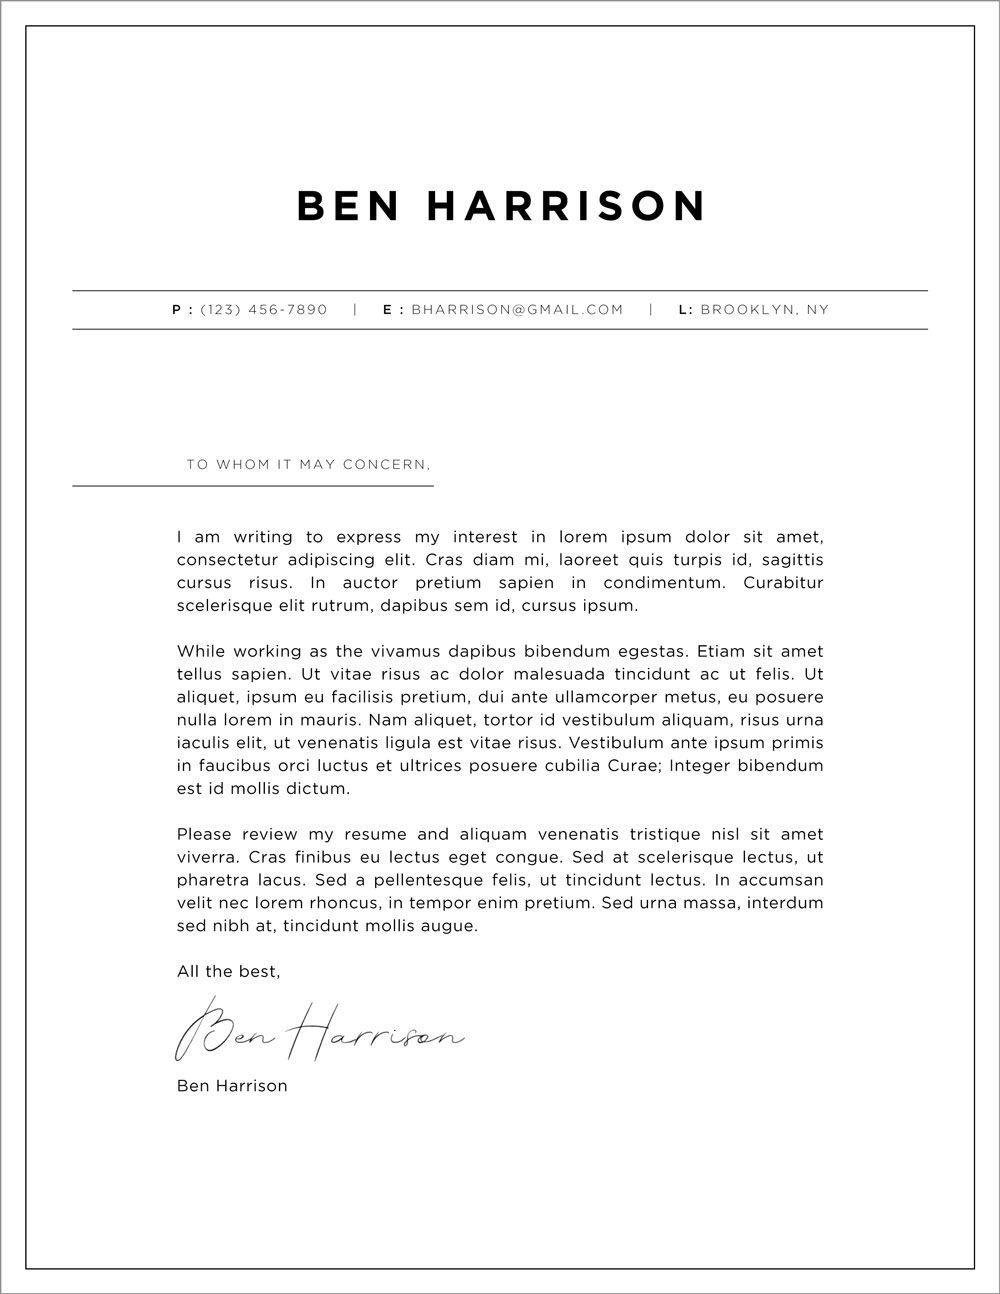 Cover letter design services, resume design template